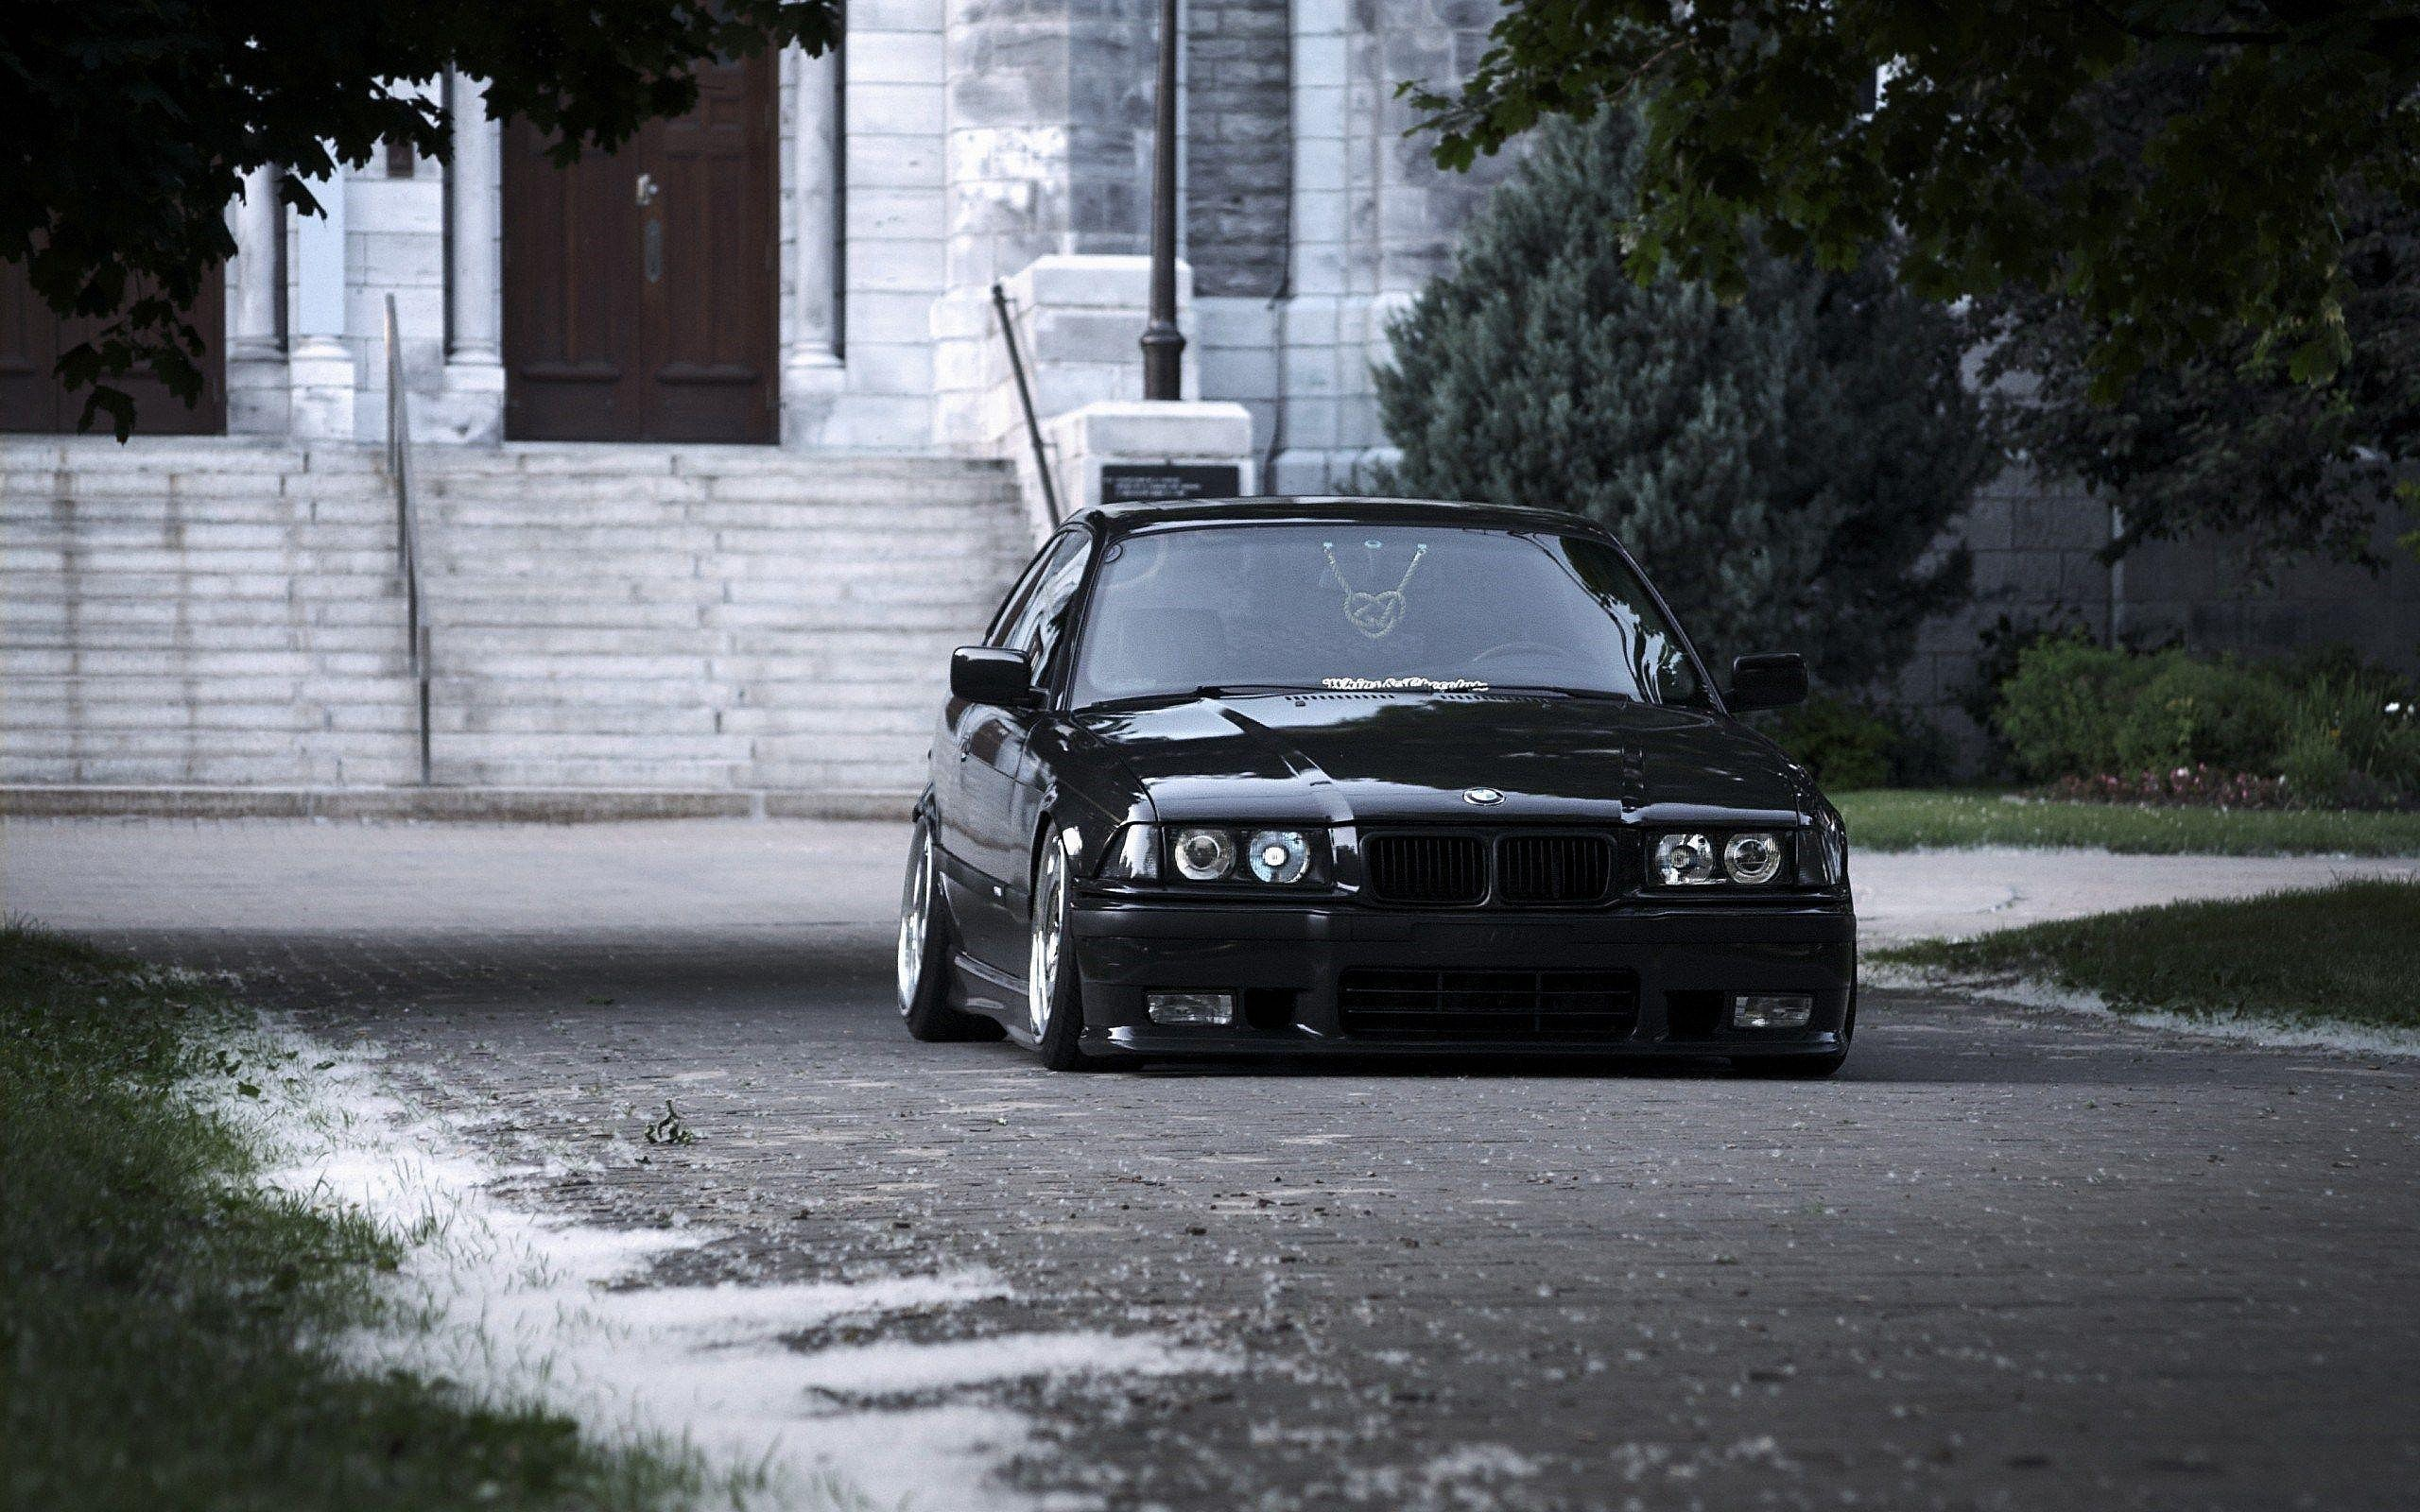 2560x1600 bmw e36 wallpapers tapete höhle m3 volles hd